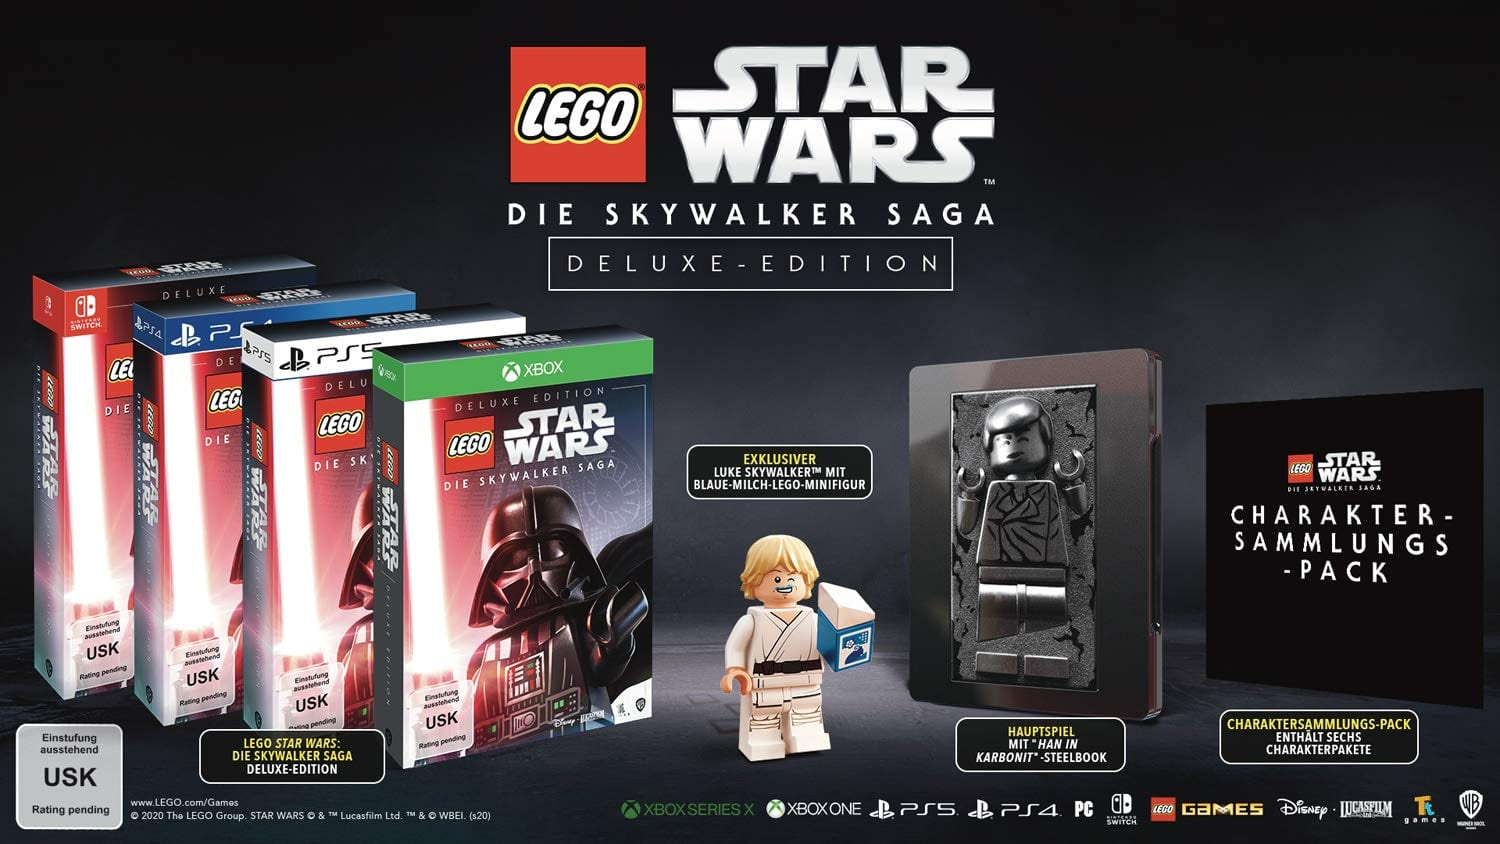 Star Wars LEGO - Die Skywalker Saga Deluxe Edition